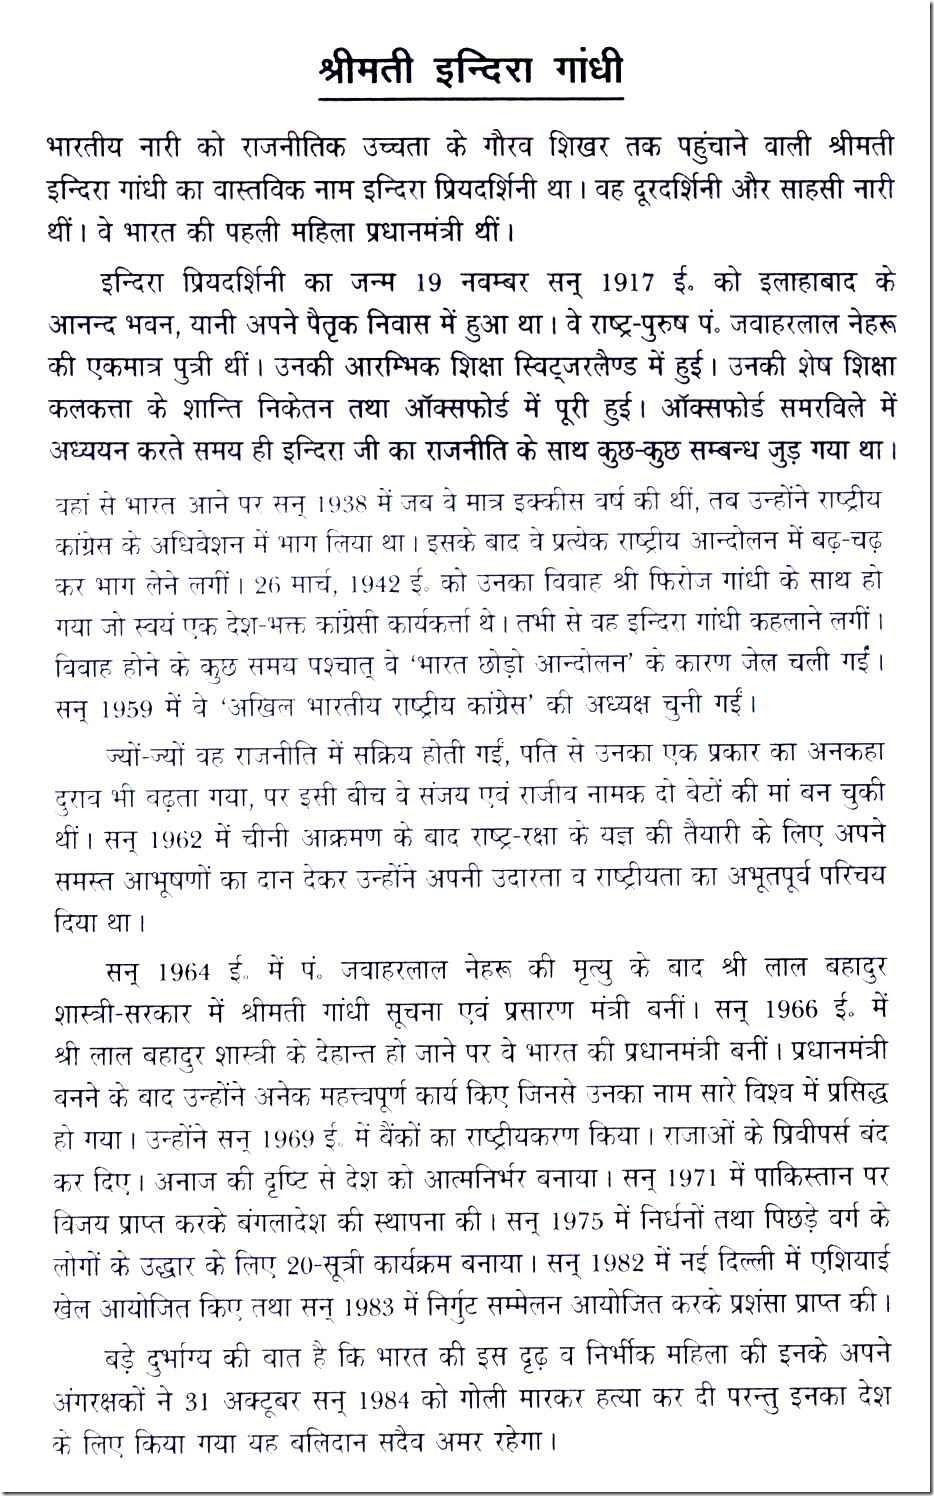 Indira Gandhi Essay In Hindi Mahatma Gandhi Was One Of The Most Famous Freedom Fighters In The History Of Mankind He Led College Essay Essay Questions Essay